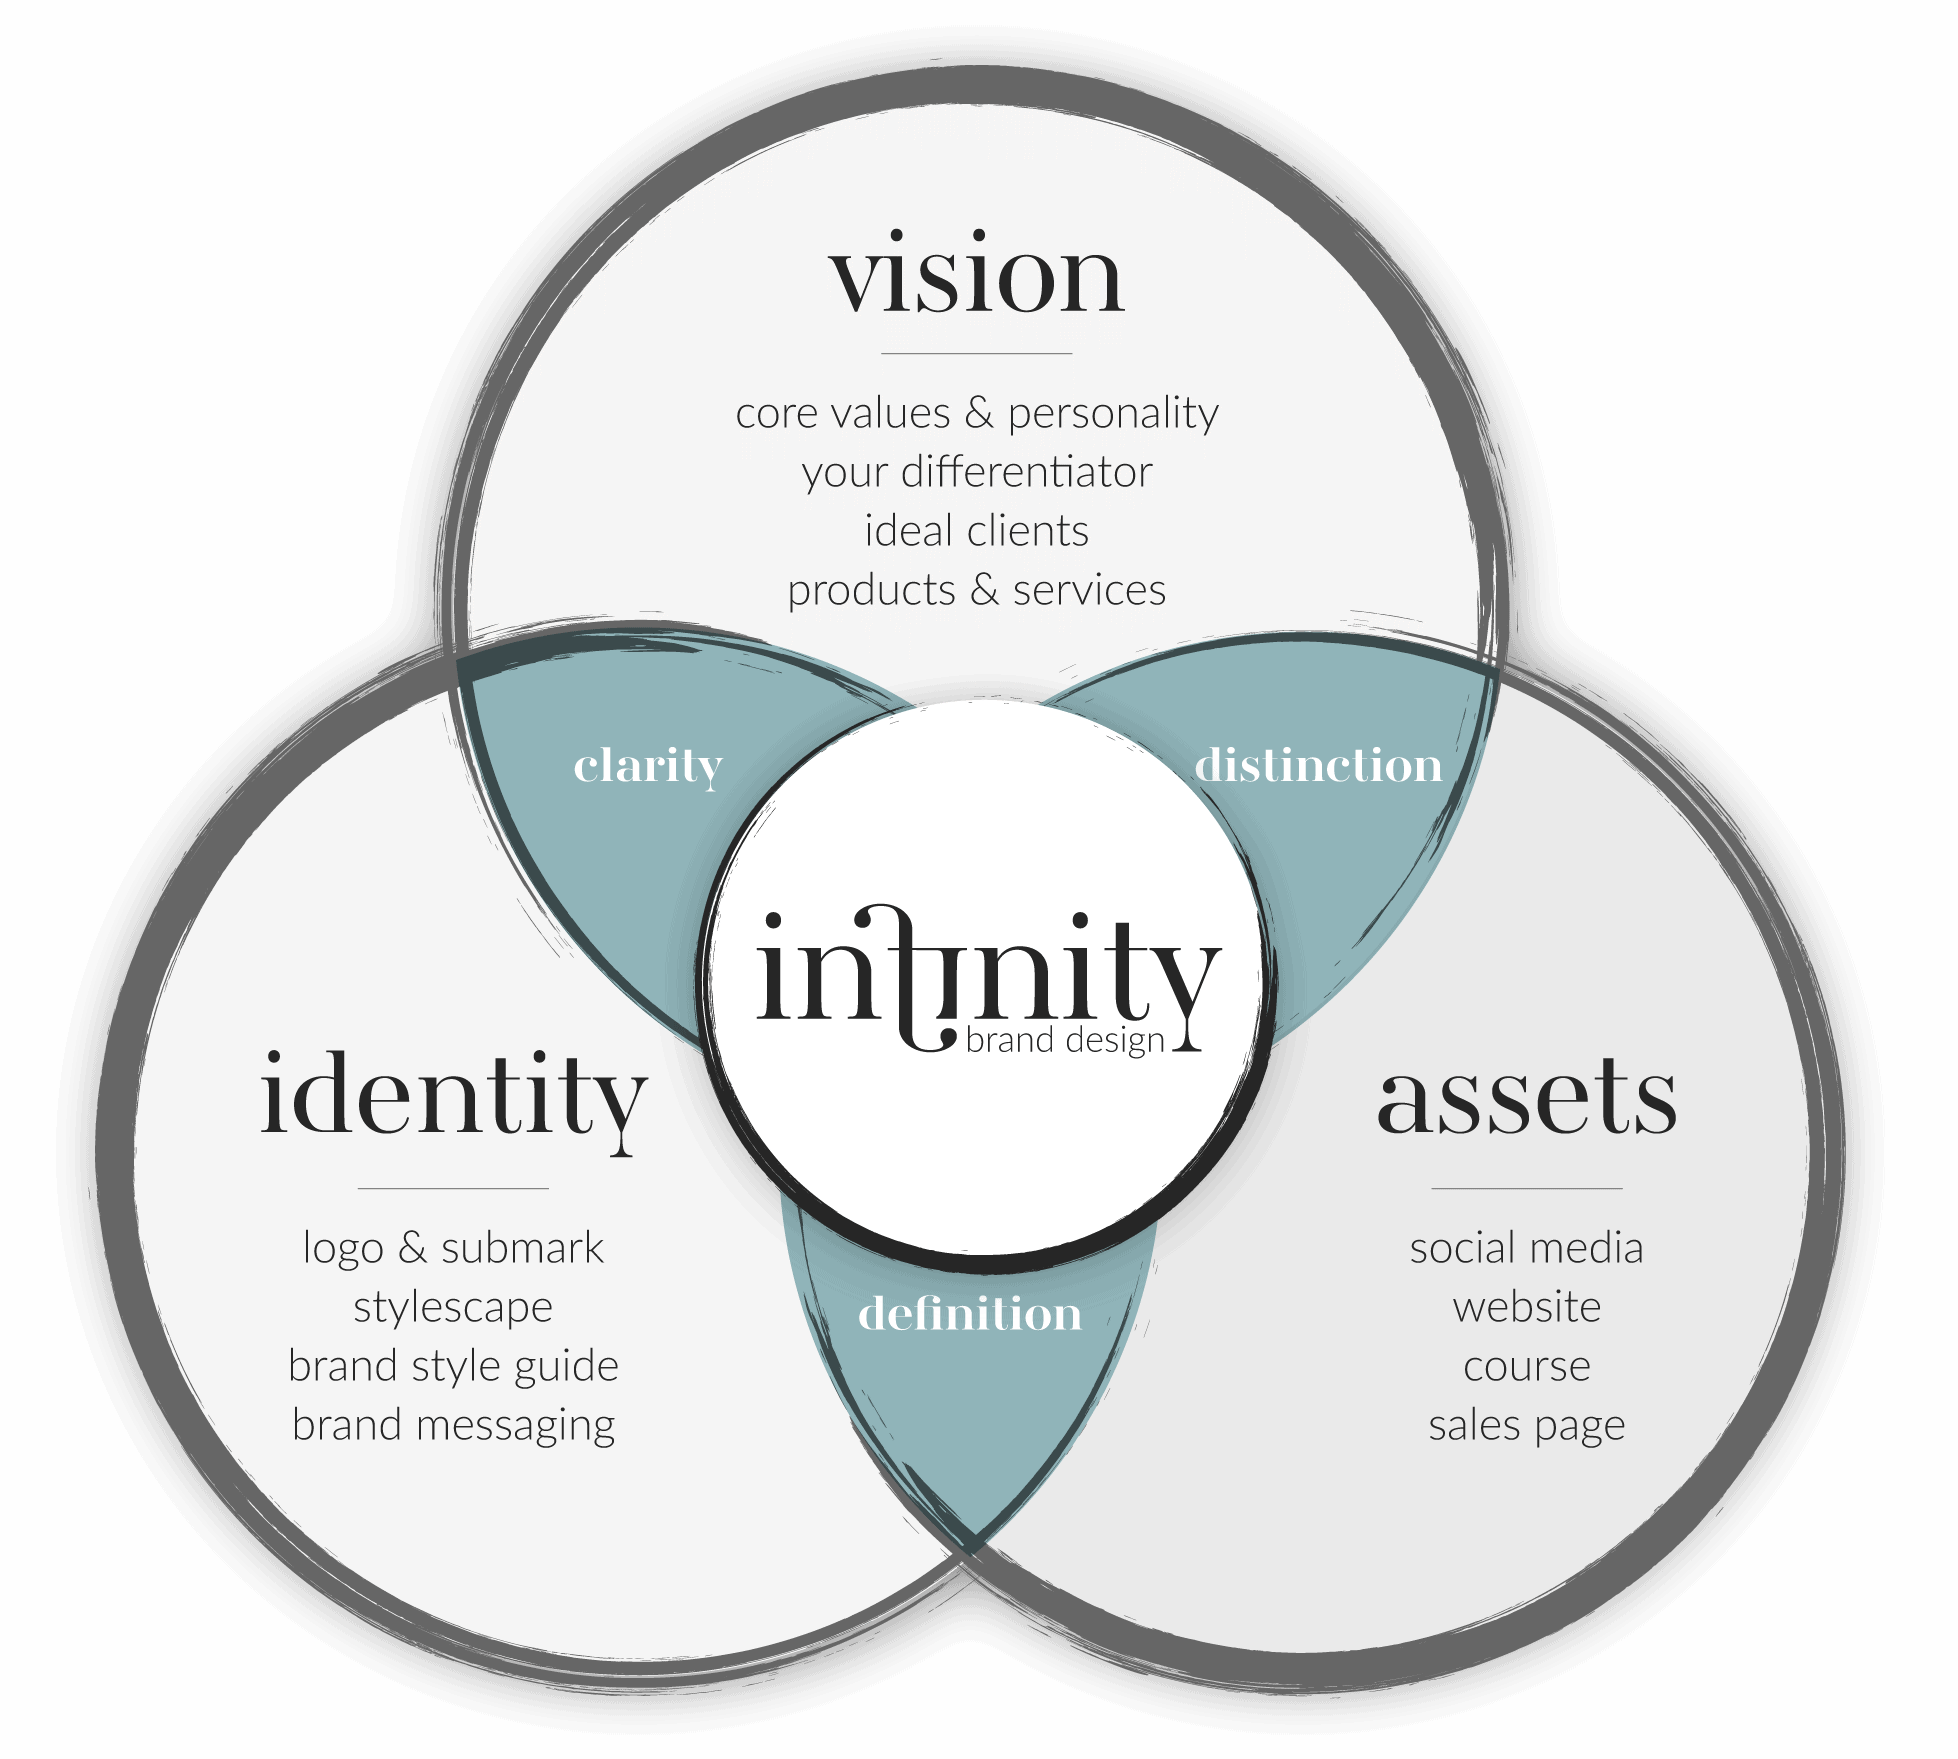 The Infinity Brand Design framework based on: Gaining Definition, Gaining Distinction, and Gaining Definition through my tried and true process.